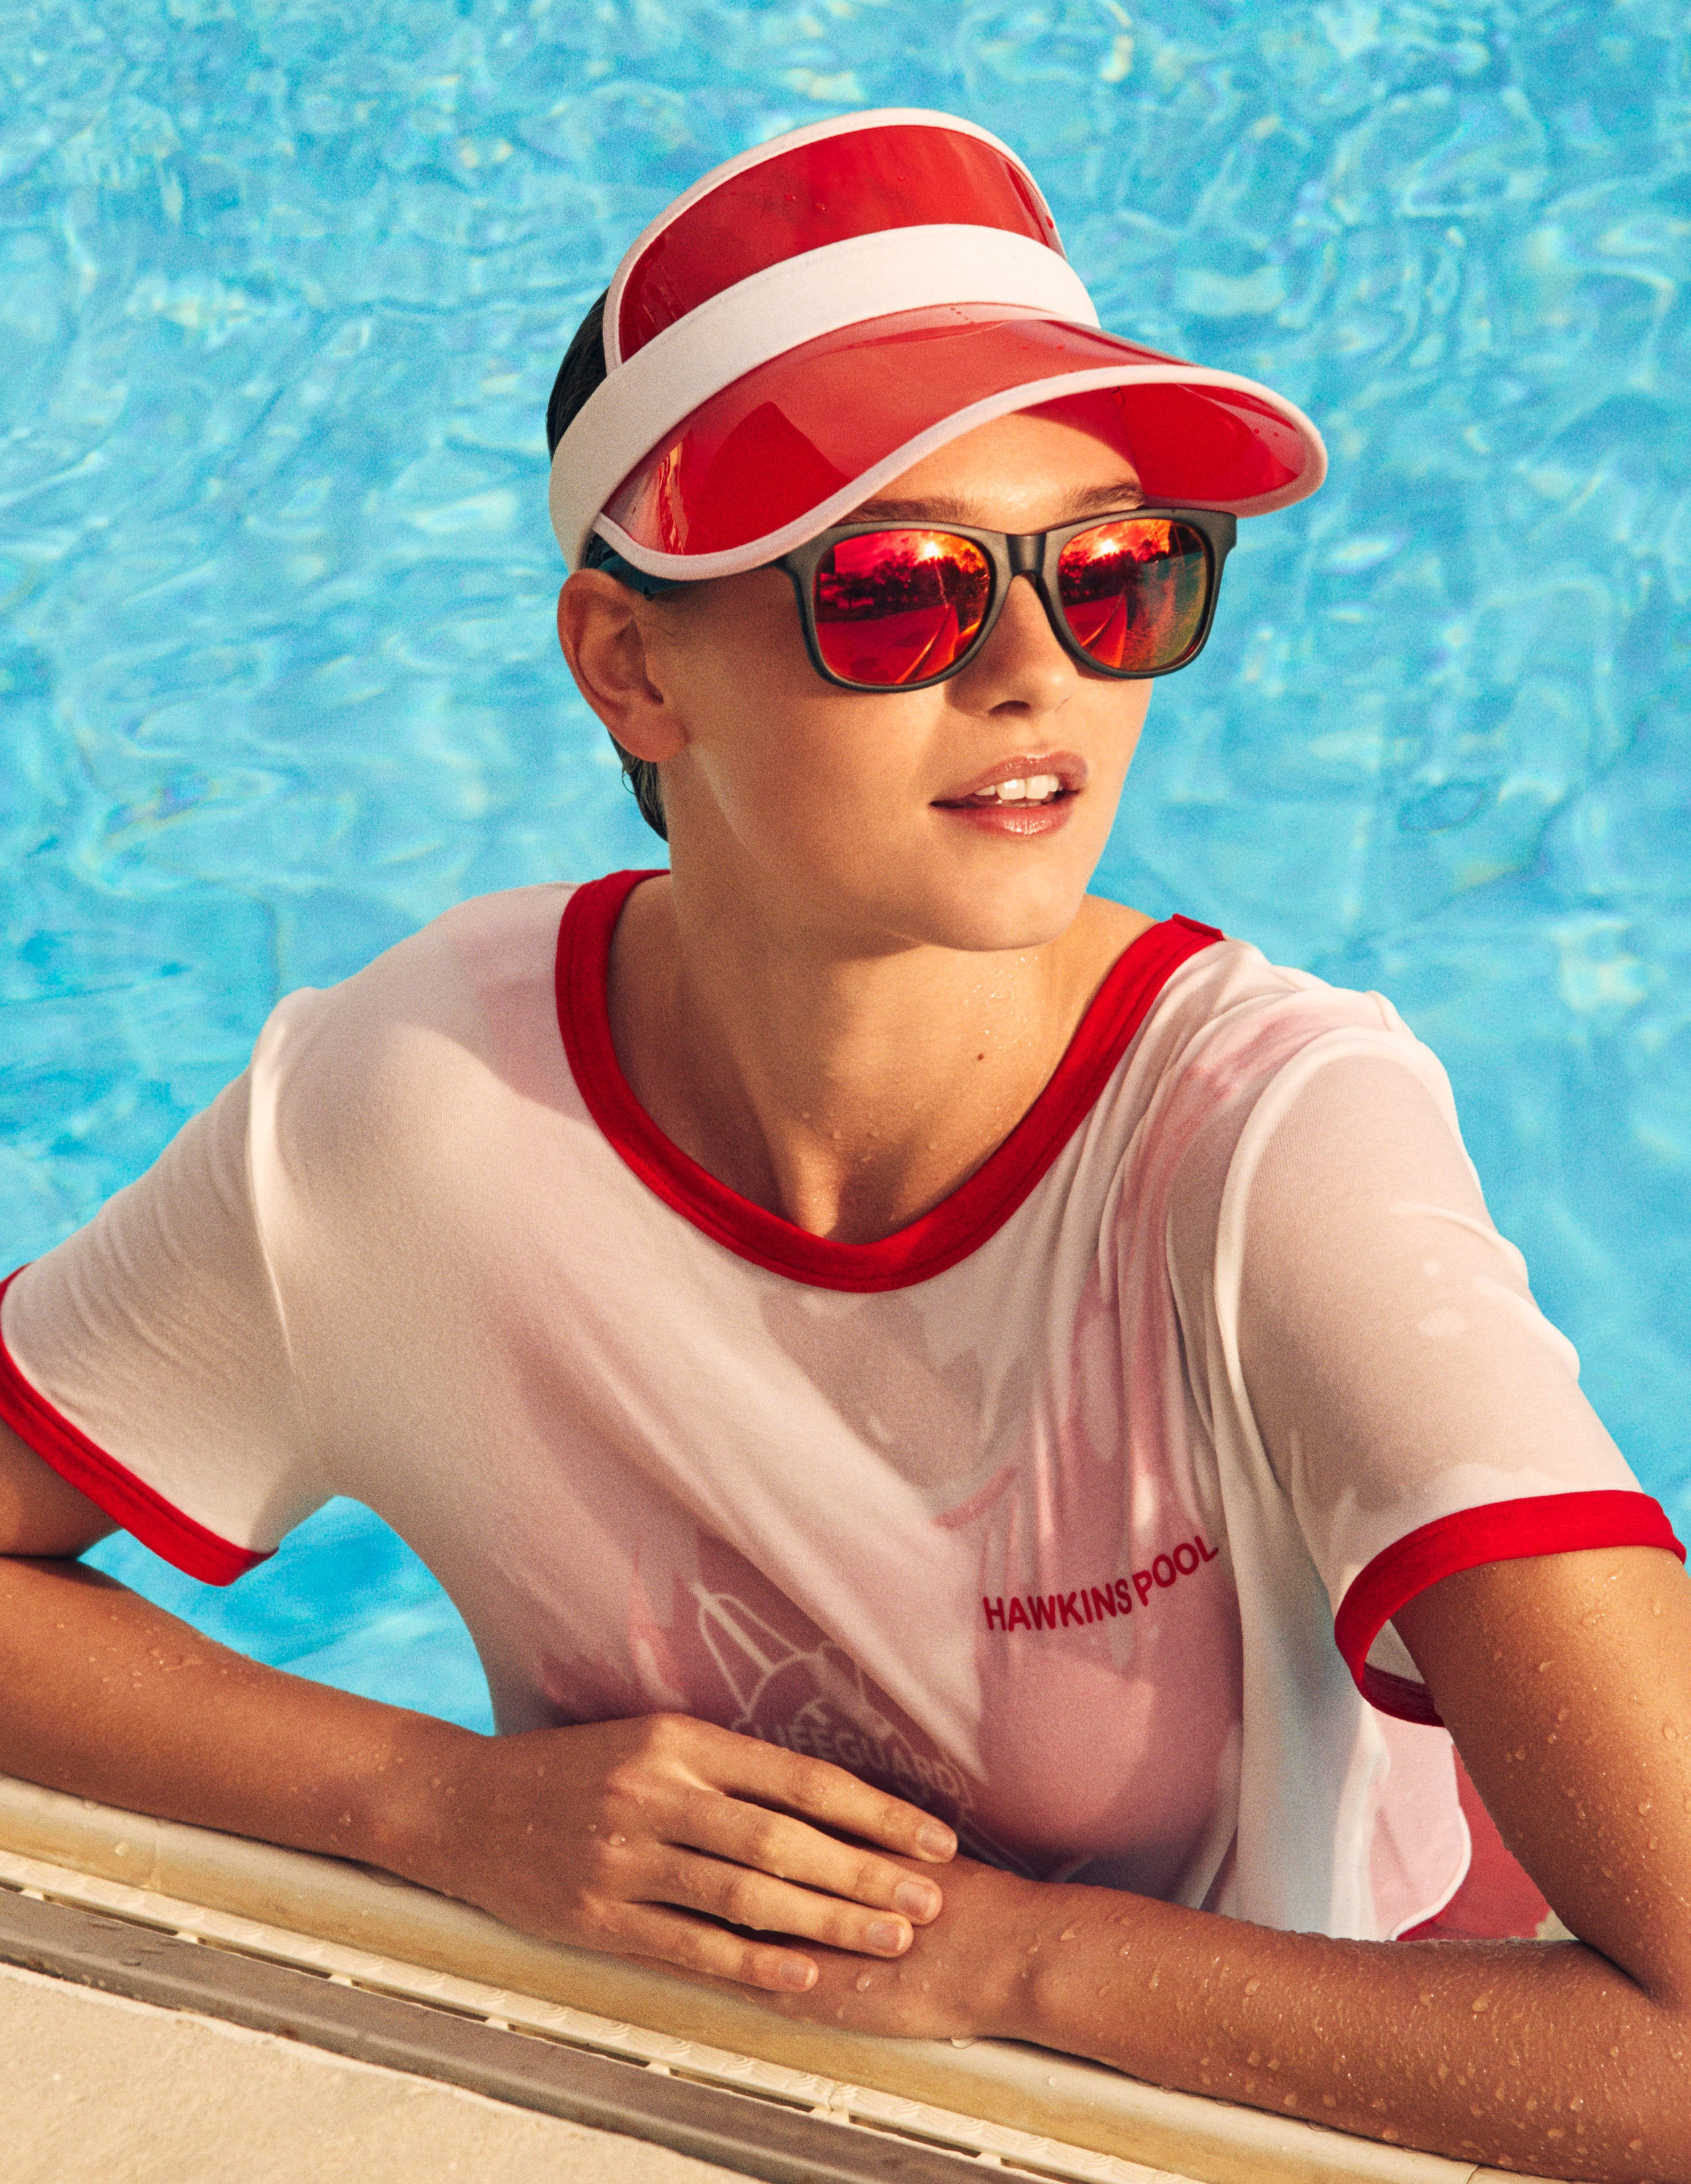 Nouvelle Collection Hm The Stranger Things X H M Collab Will Turn You Into A Lifeguard